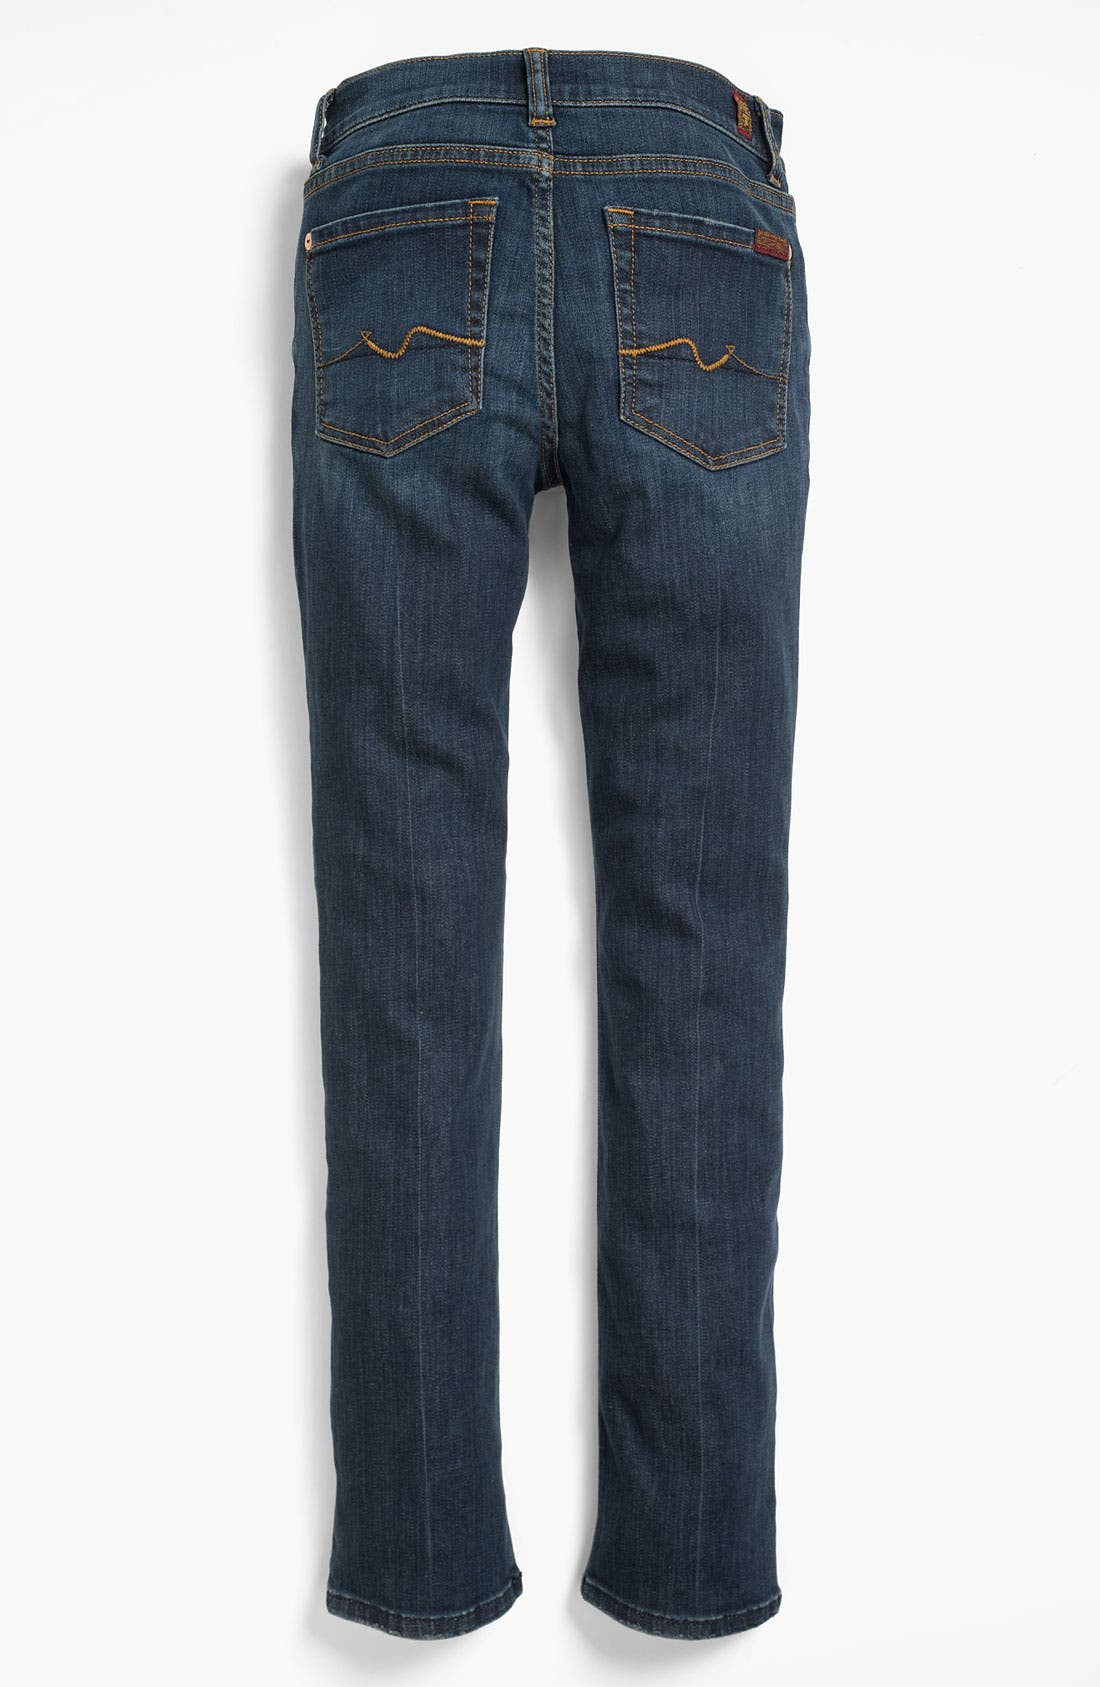 Alternate Image 1 Selected - 7 For All Mankind® Skinny Jeans (Big Girls)